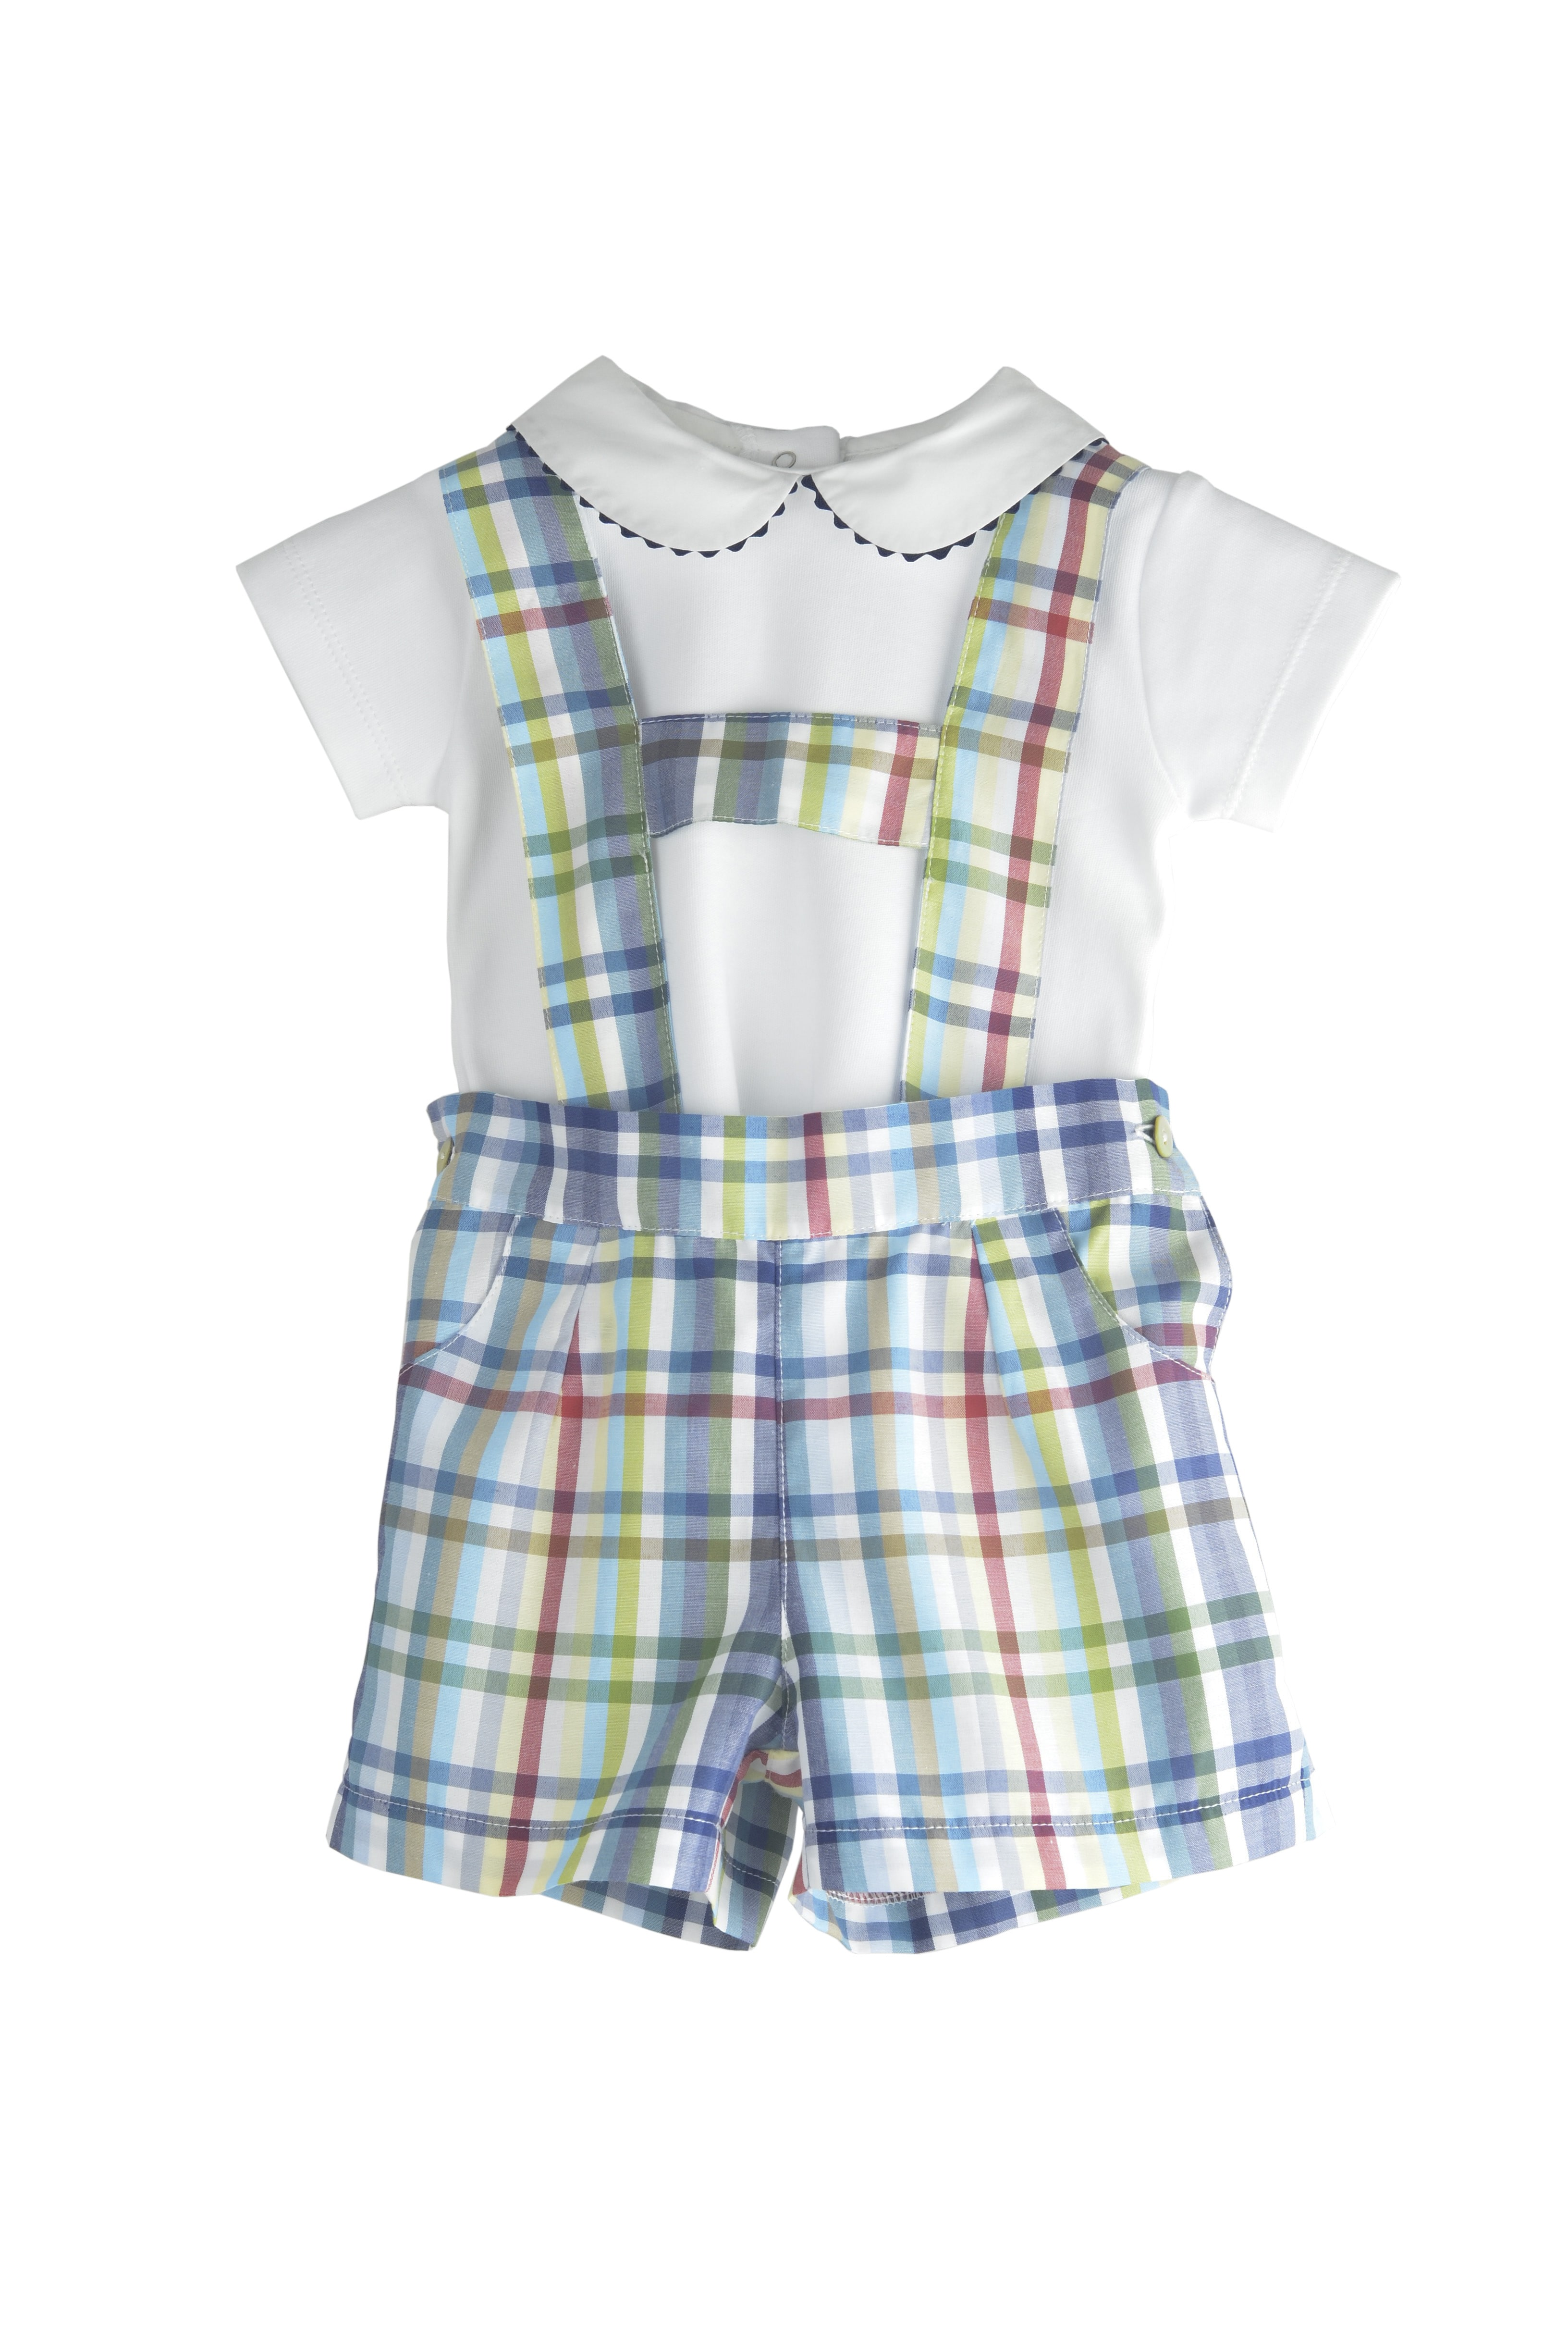 40dceec46 New Born Baby Dress Online Shopping | Buy Baby Clothes Online UK